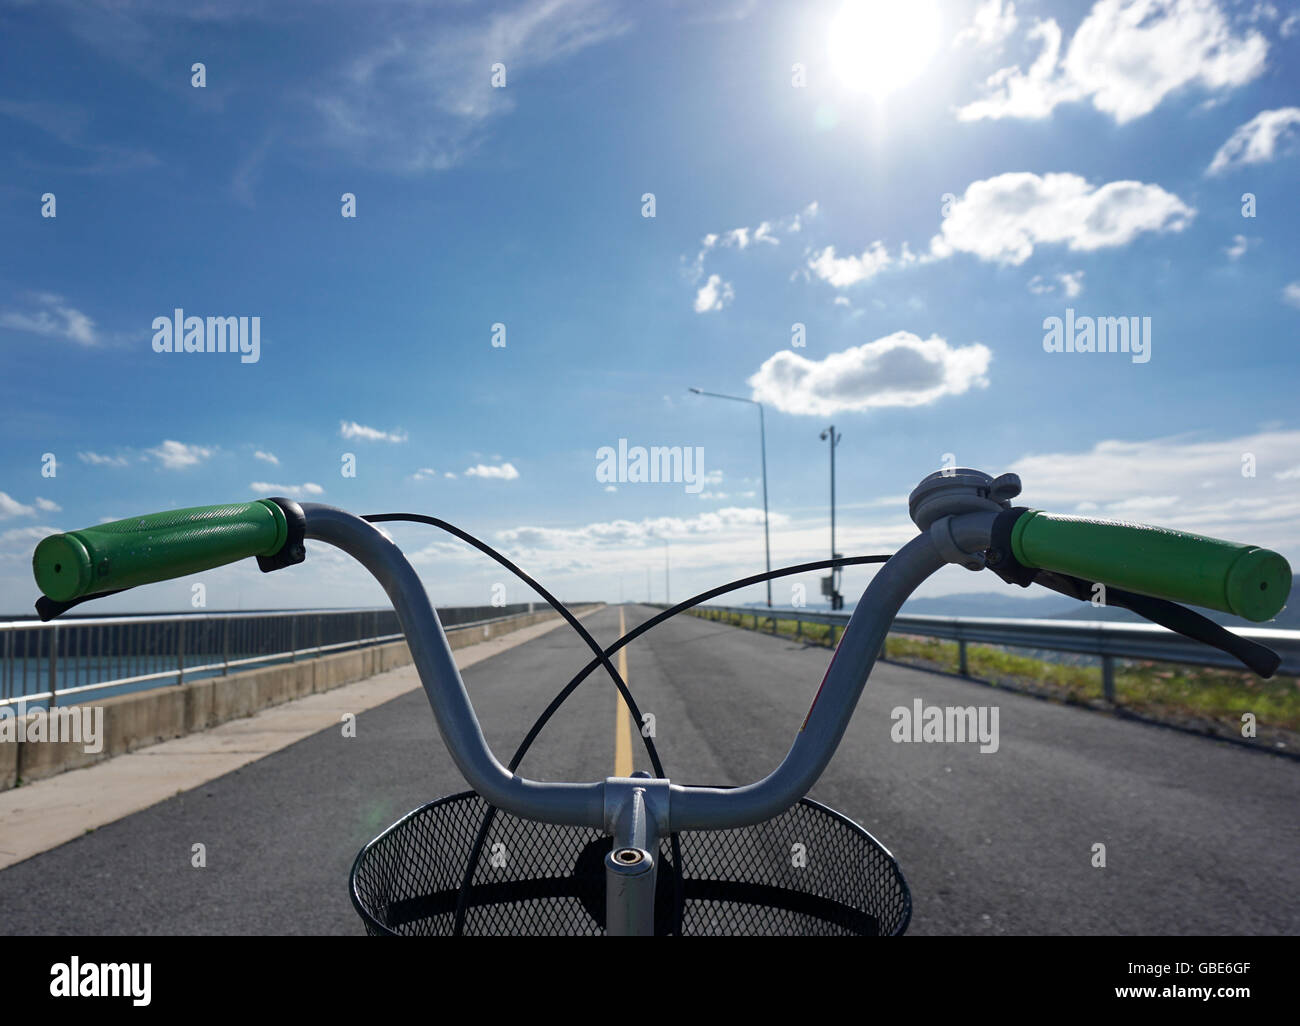 bicycle only handlebars straight ahead direction with blue sky background - Stock Image